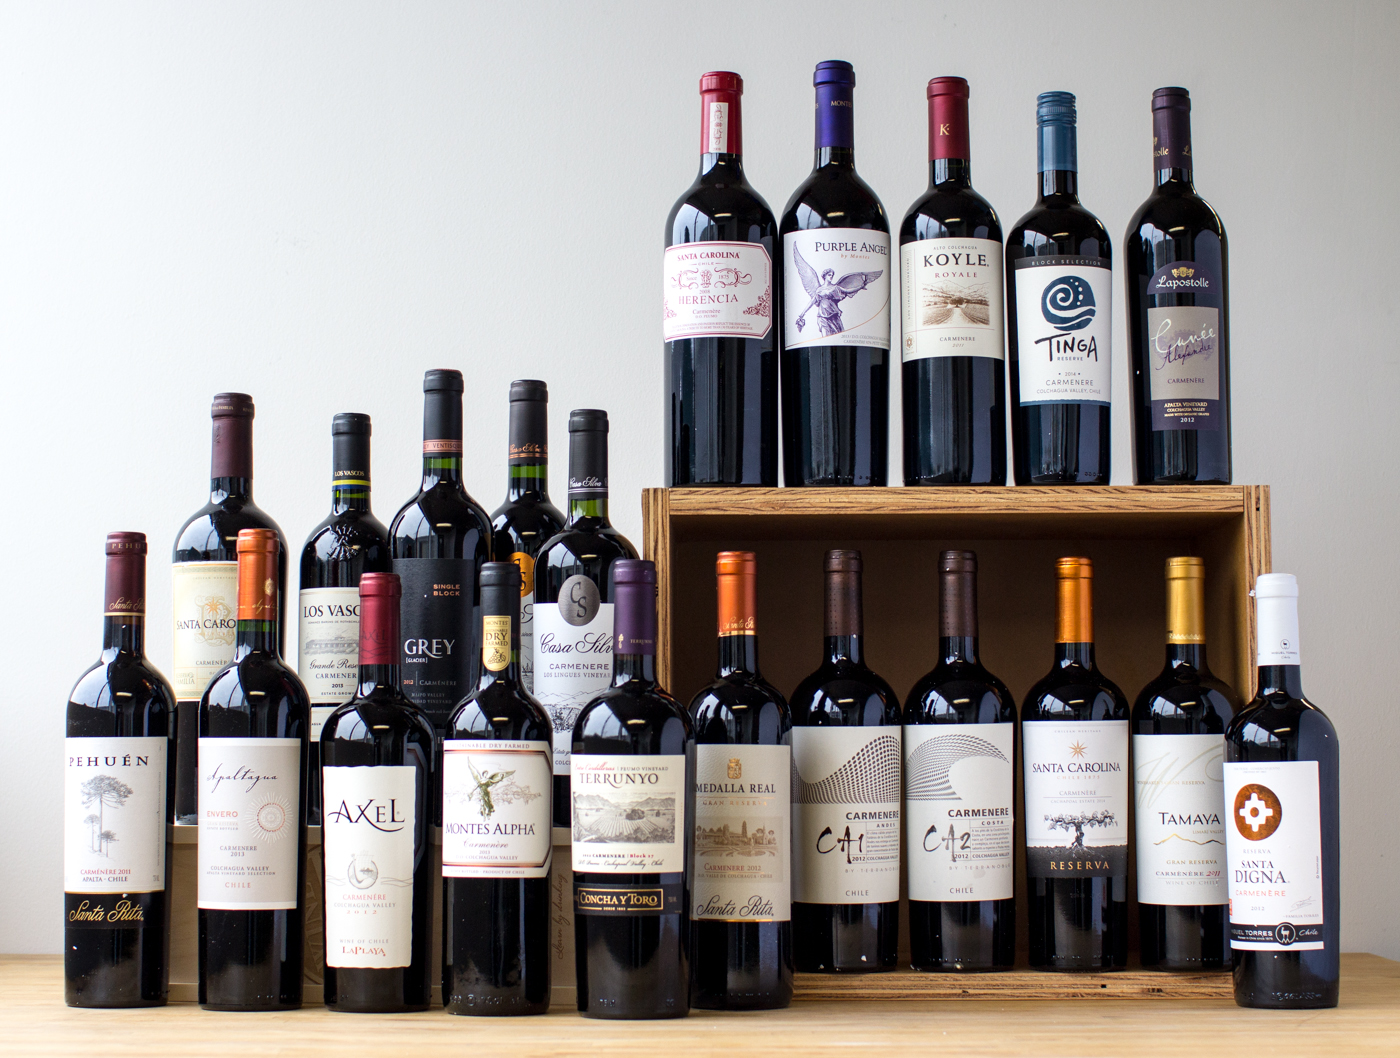 A selection of several of Chile's most well-known Carménère producers.